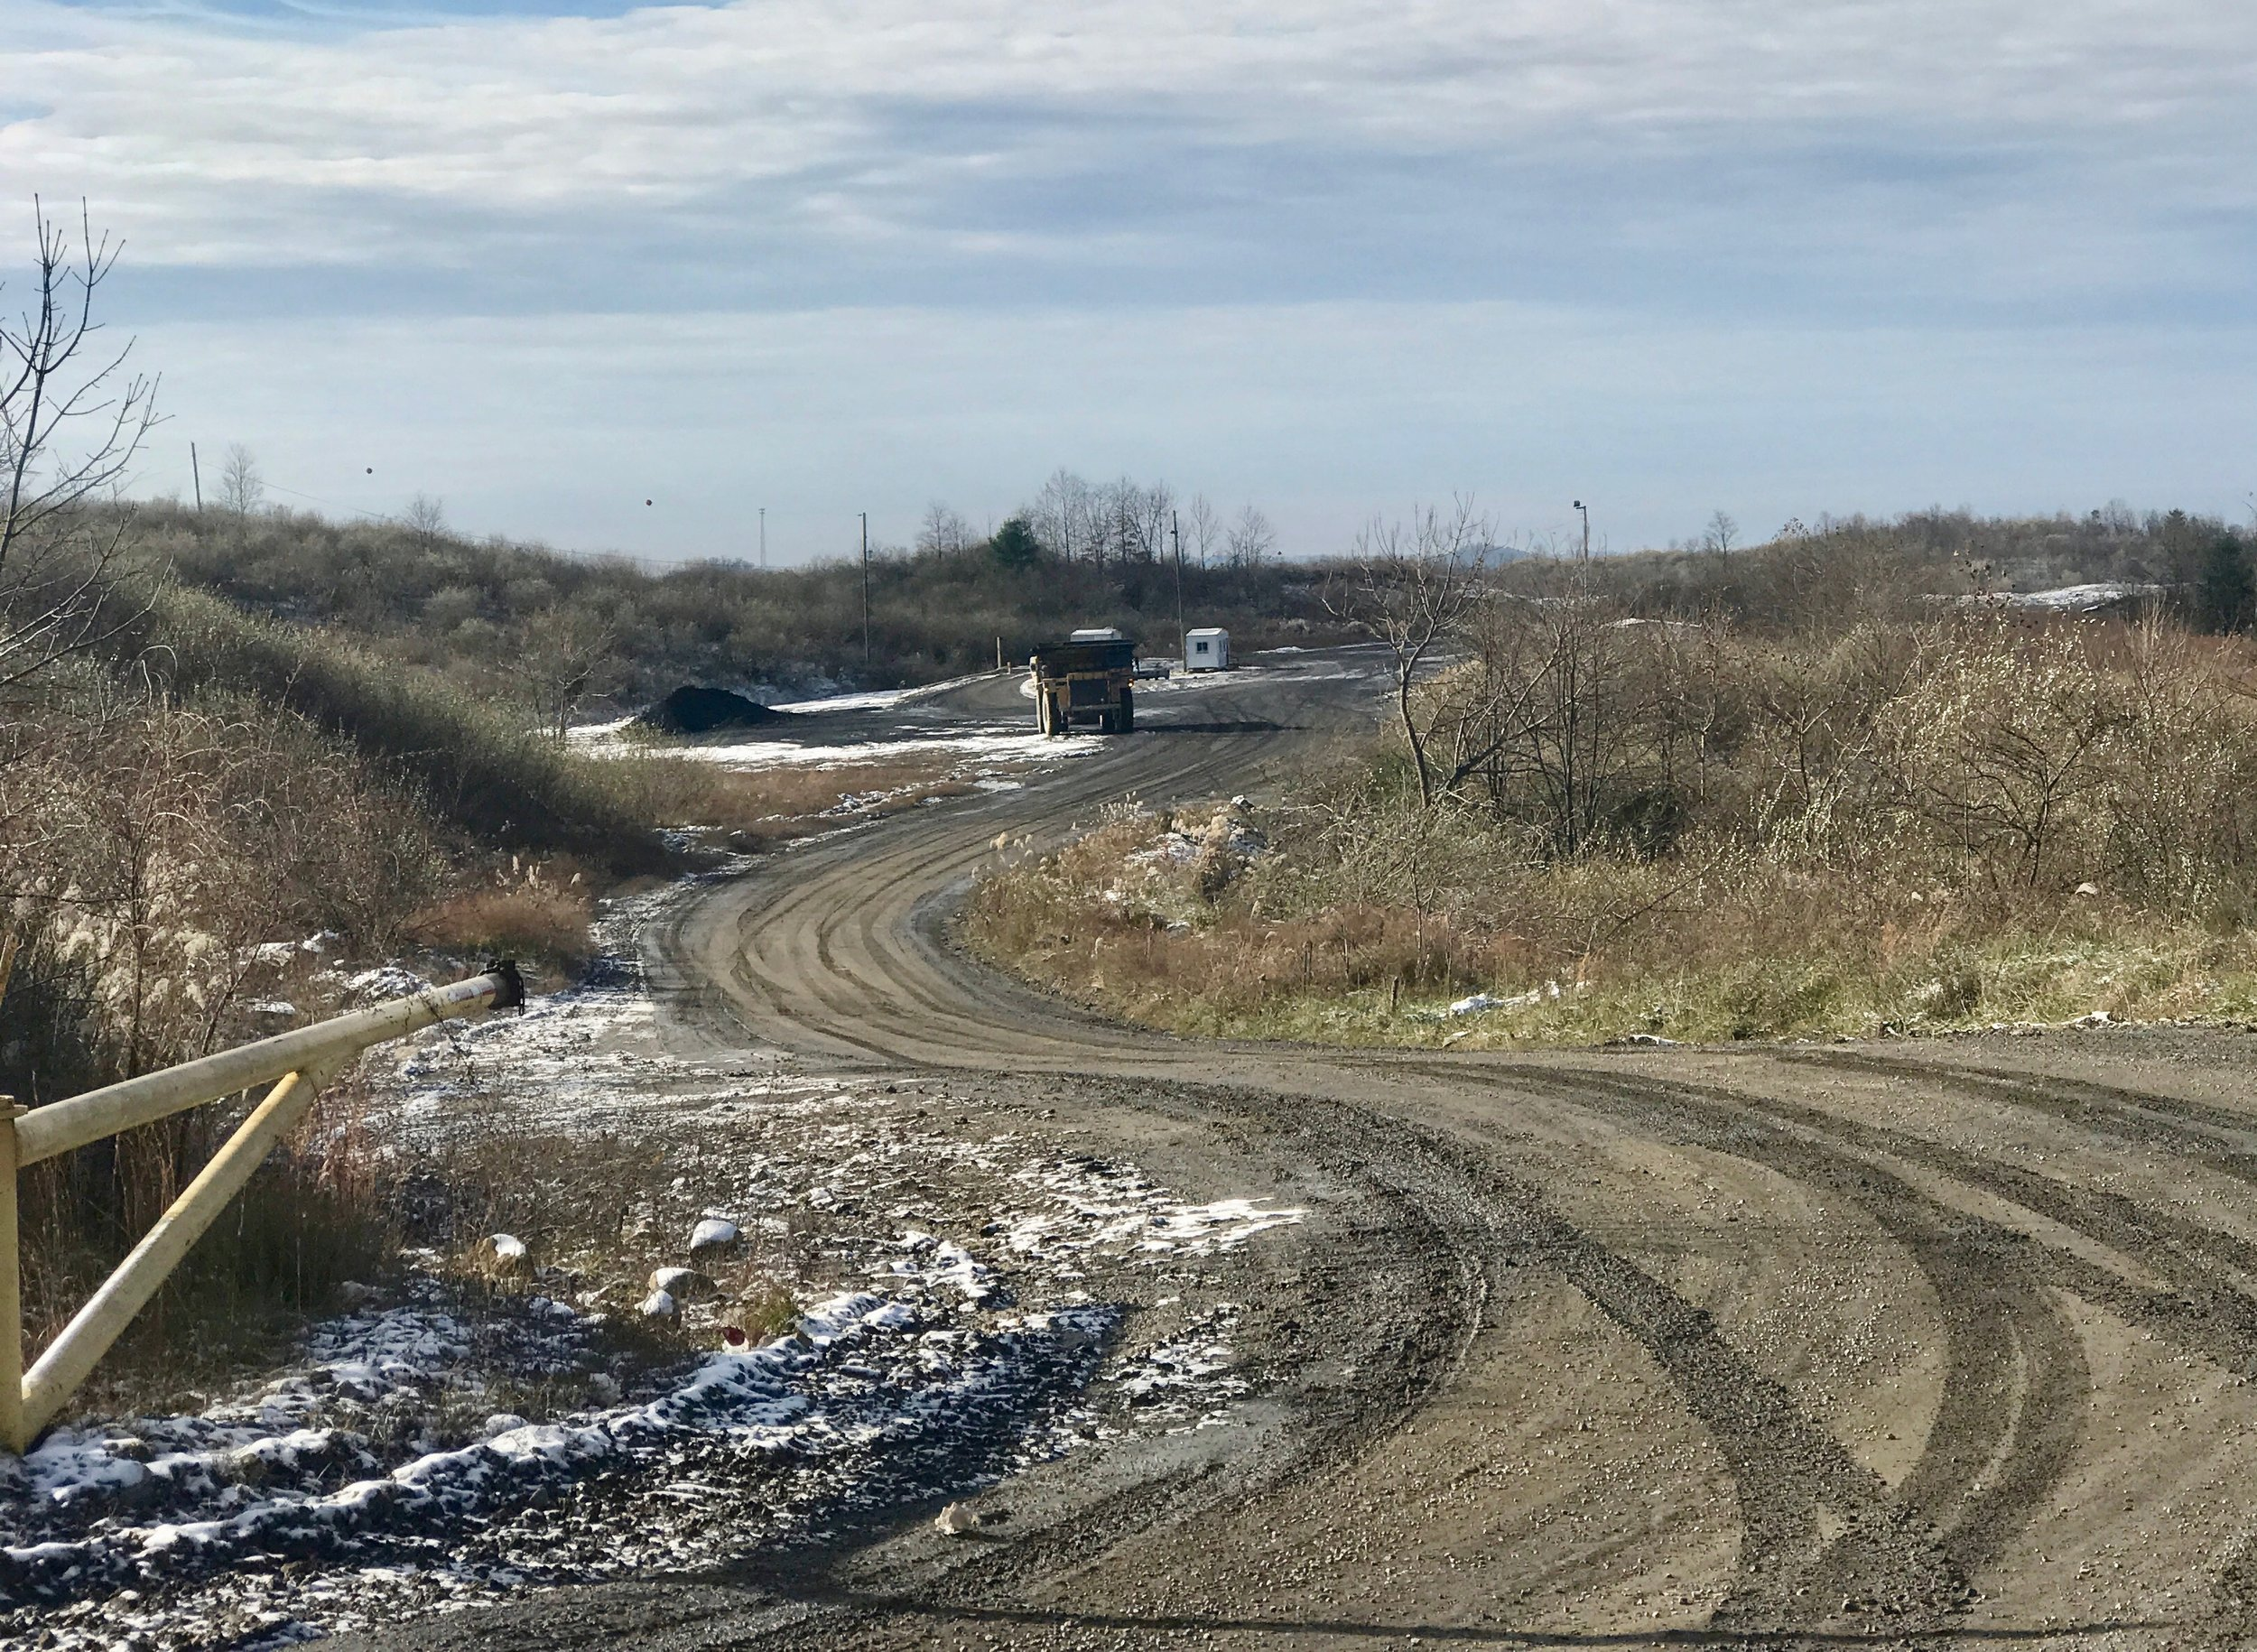 A coal truck moves through the Bent Mountain surface-mining operation outside Pikeville, Ky. A $150 million solar energy project has been proposed for the site.